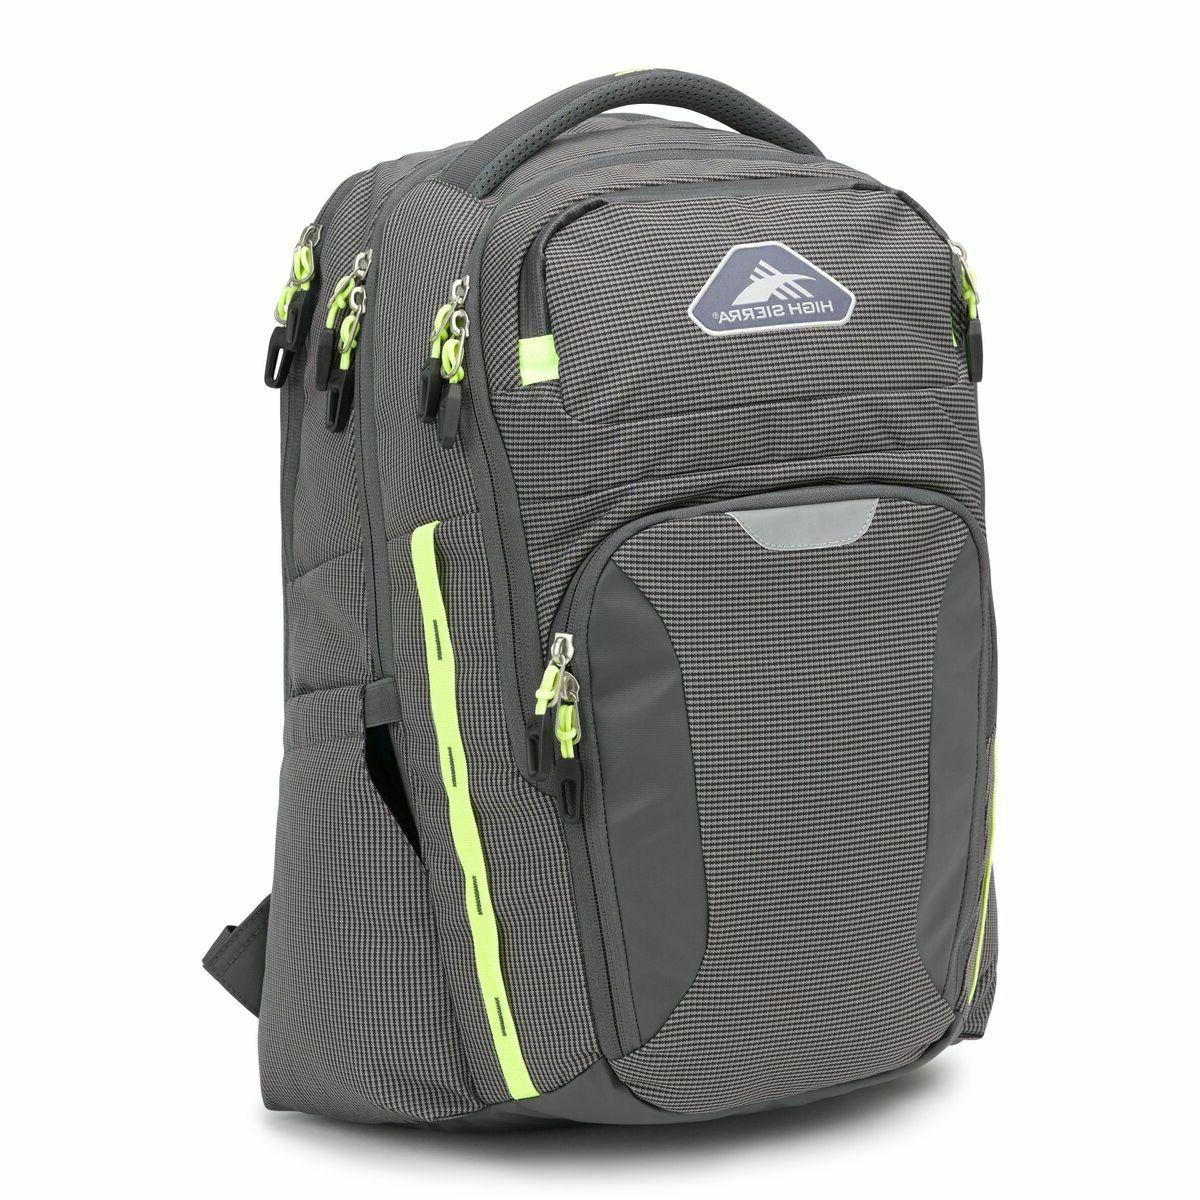 autry laptop backpack gray color business